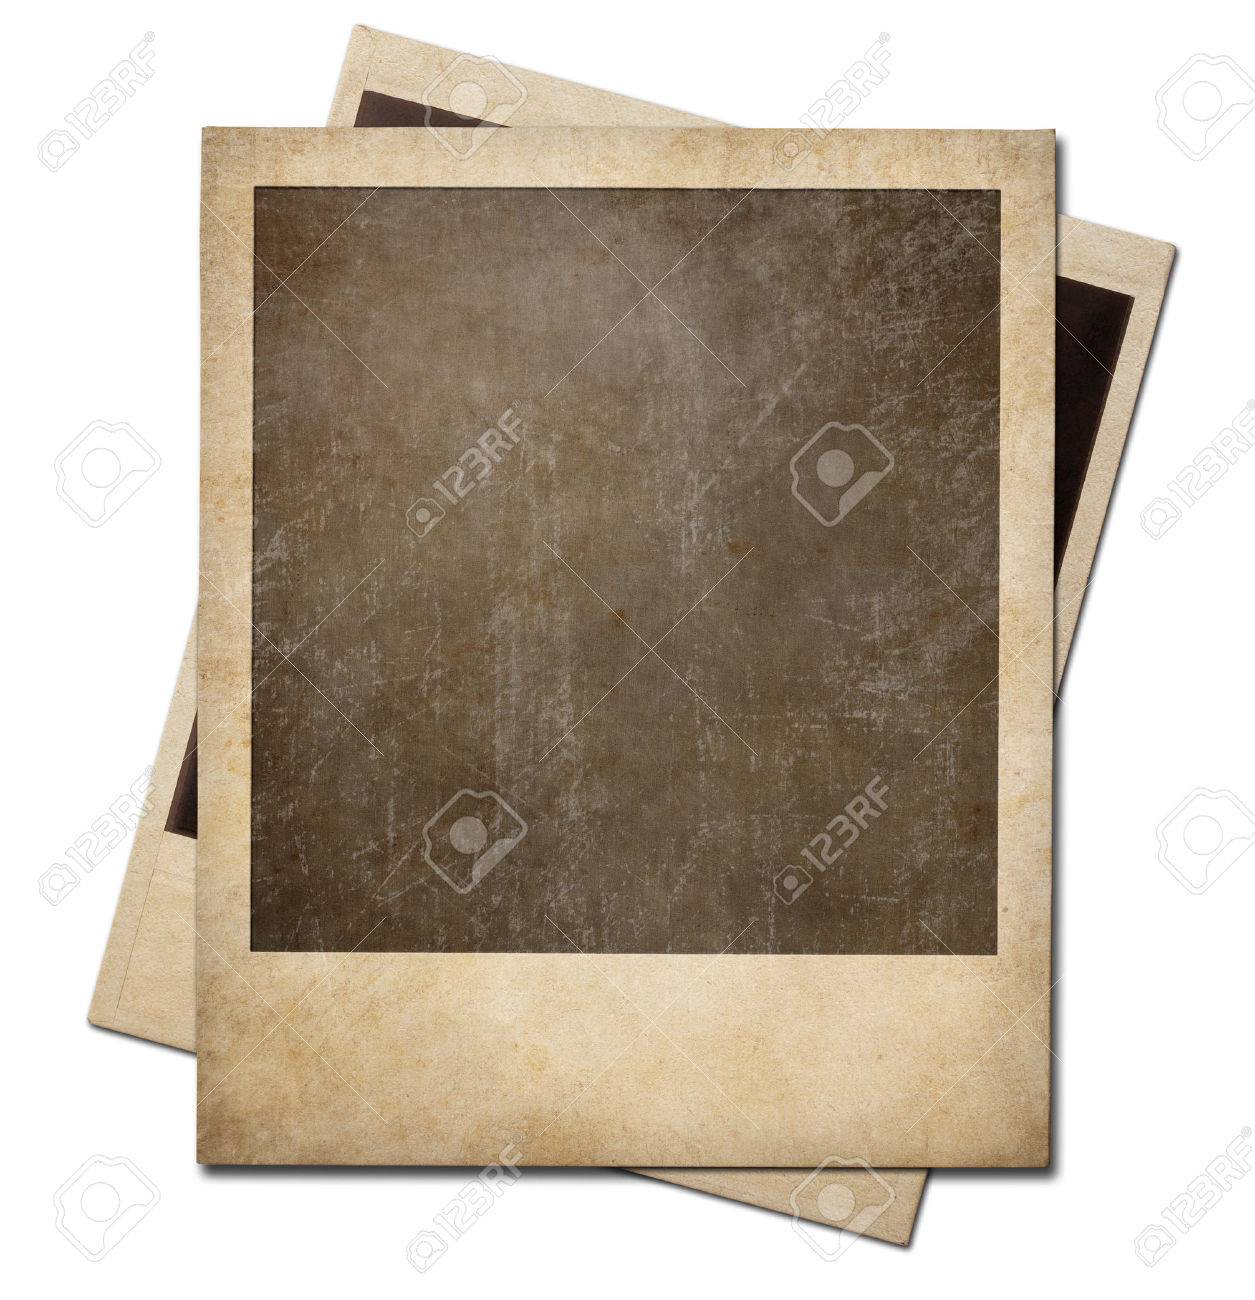 Grunge instant photo polaroid frames isolated. Clipping path without shadows is included. Stock Photo - 26755432